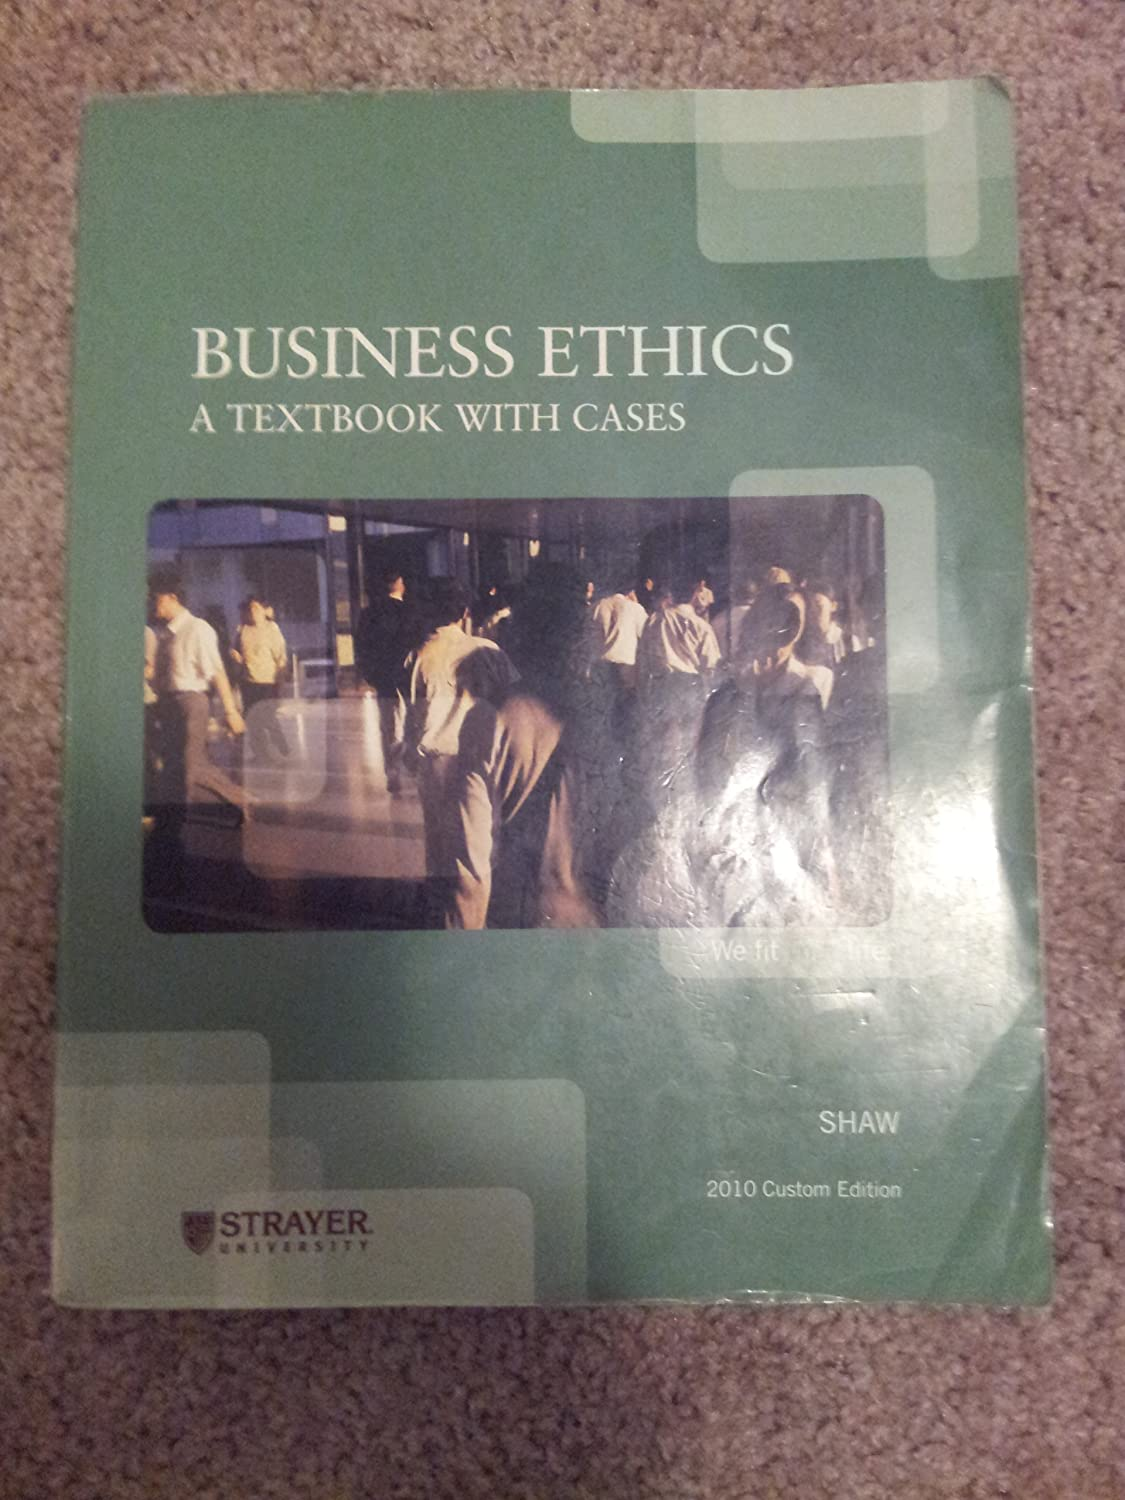 Business Ethics: A Textbook with Cases Strayer University and Shaw